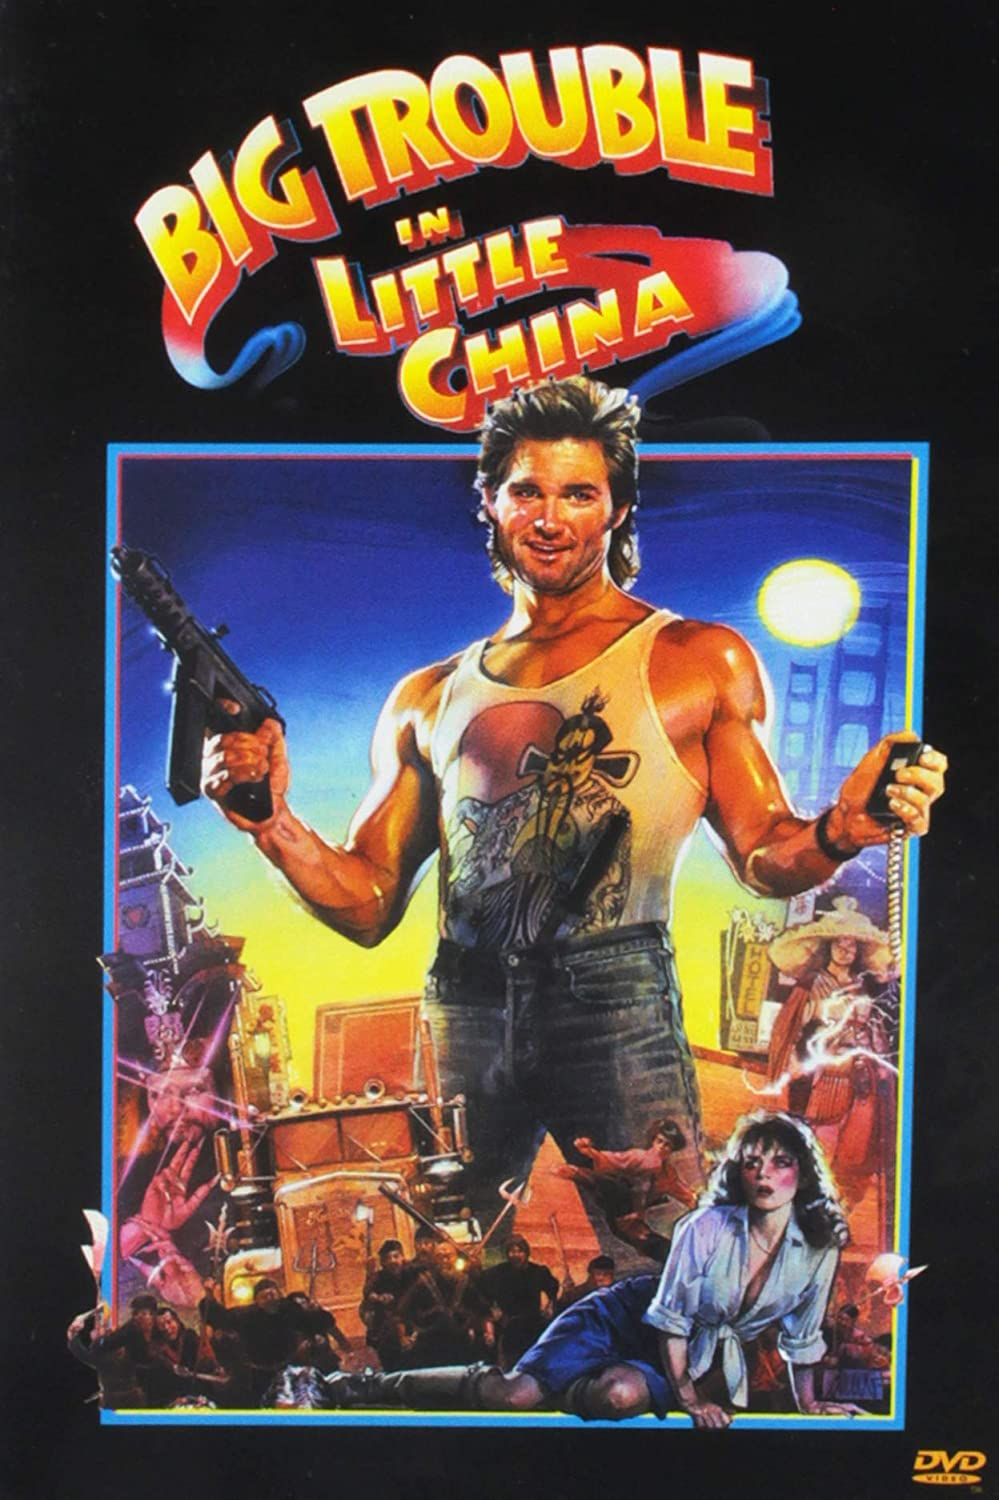 Amazon.com: Big Trouble in Little China: Kurt Russell, Kim ...